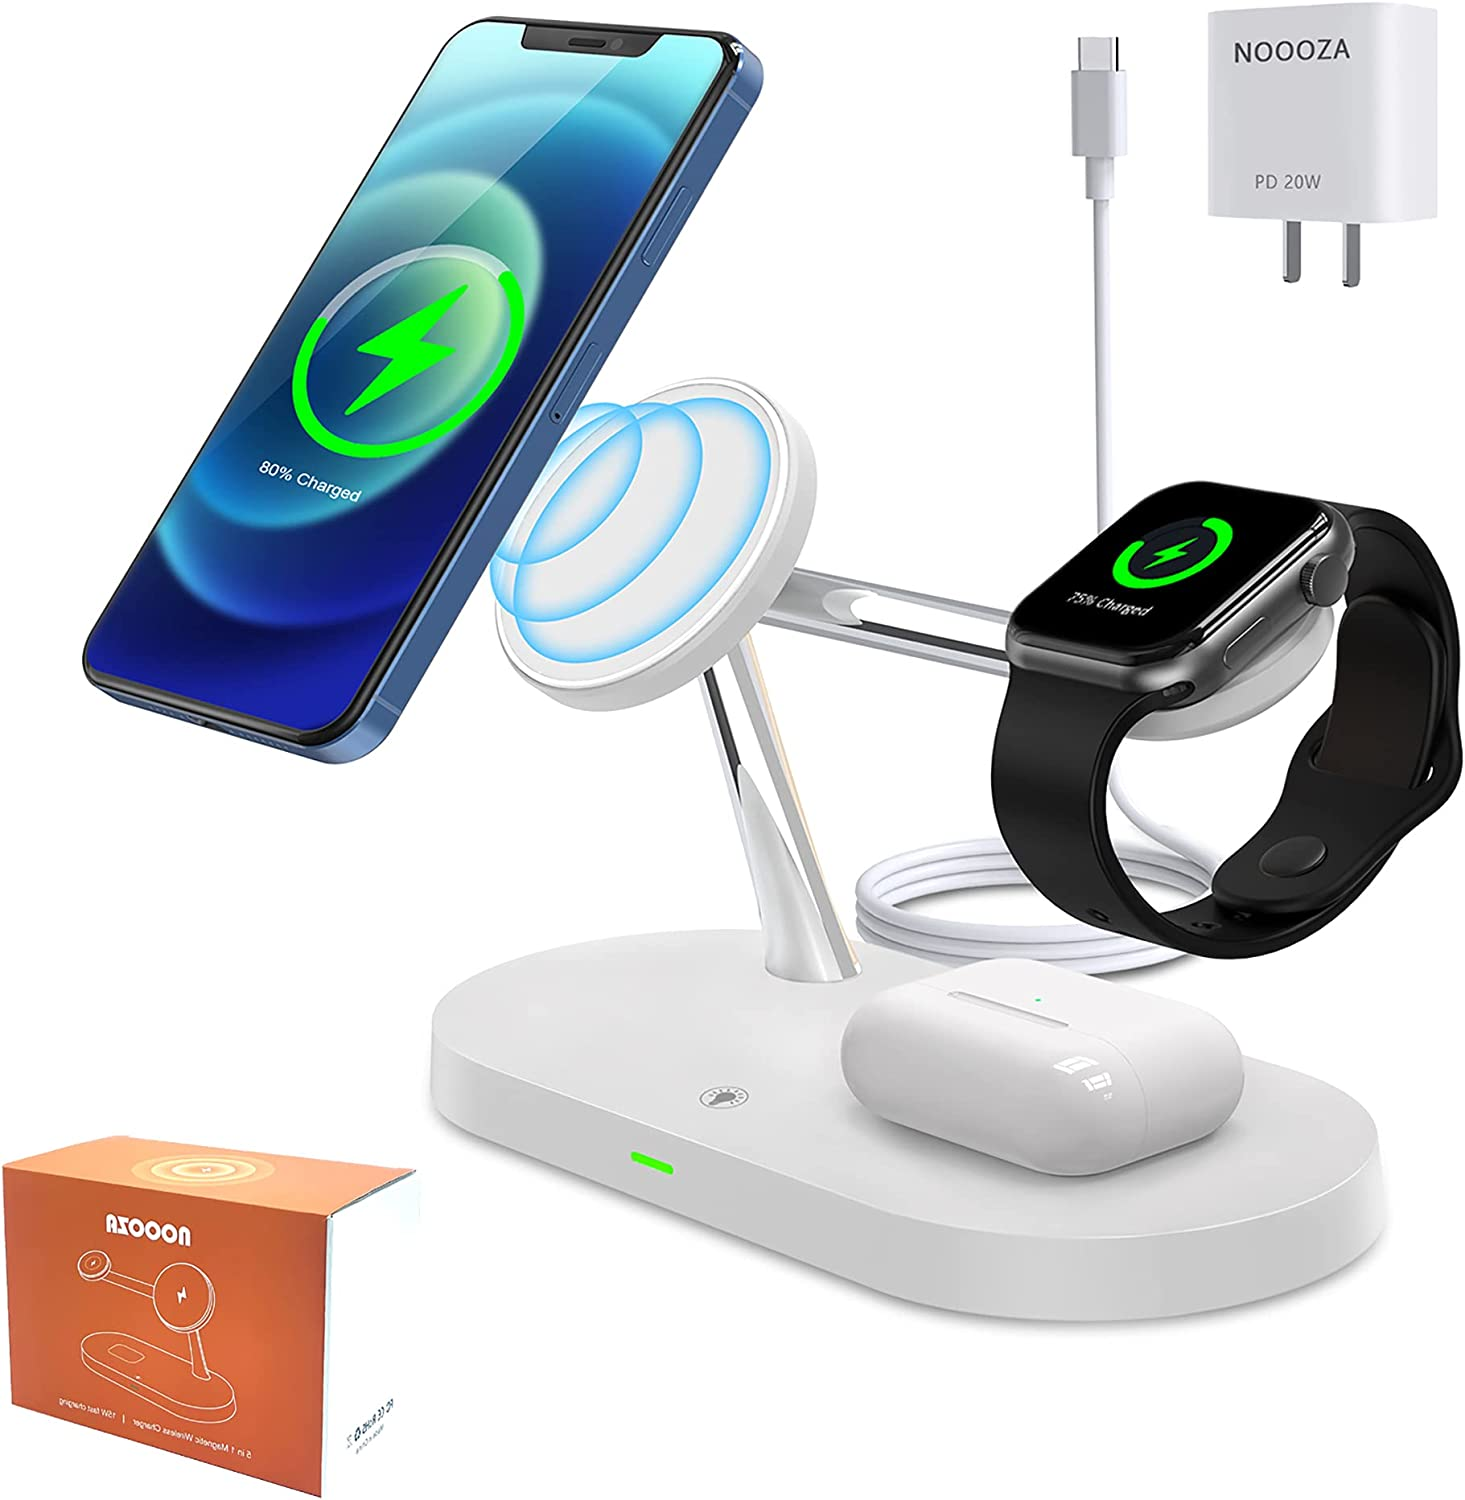 NOOOZA 3 in 1 Magnetic Wireless Charger Fast Charging Station Dock with 20 W QC3.0 Adapter Compatible with iPhone 12/12 Pro Max/Mini/AirPods Pro/AirPods 2 Magsafe Case iwatch Series, White: Electronics